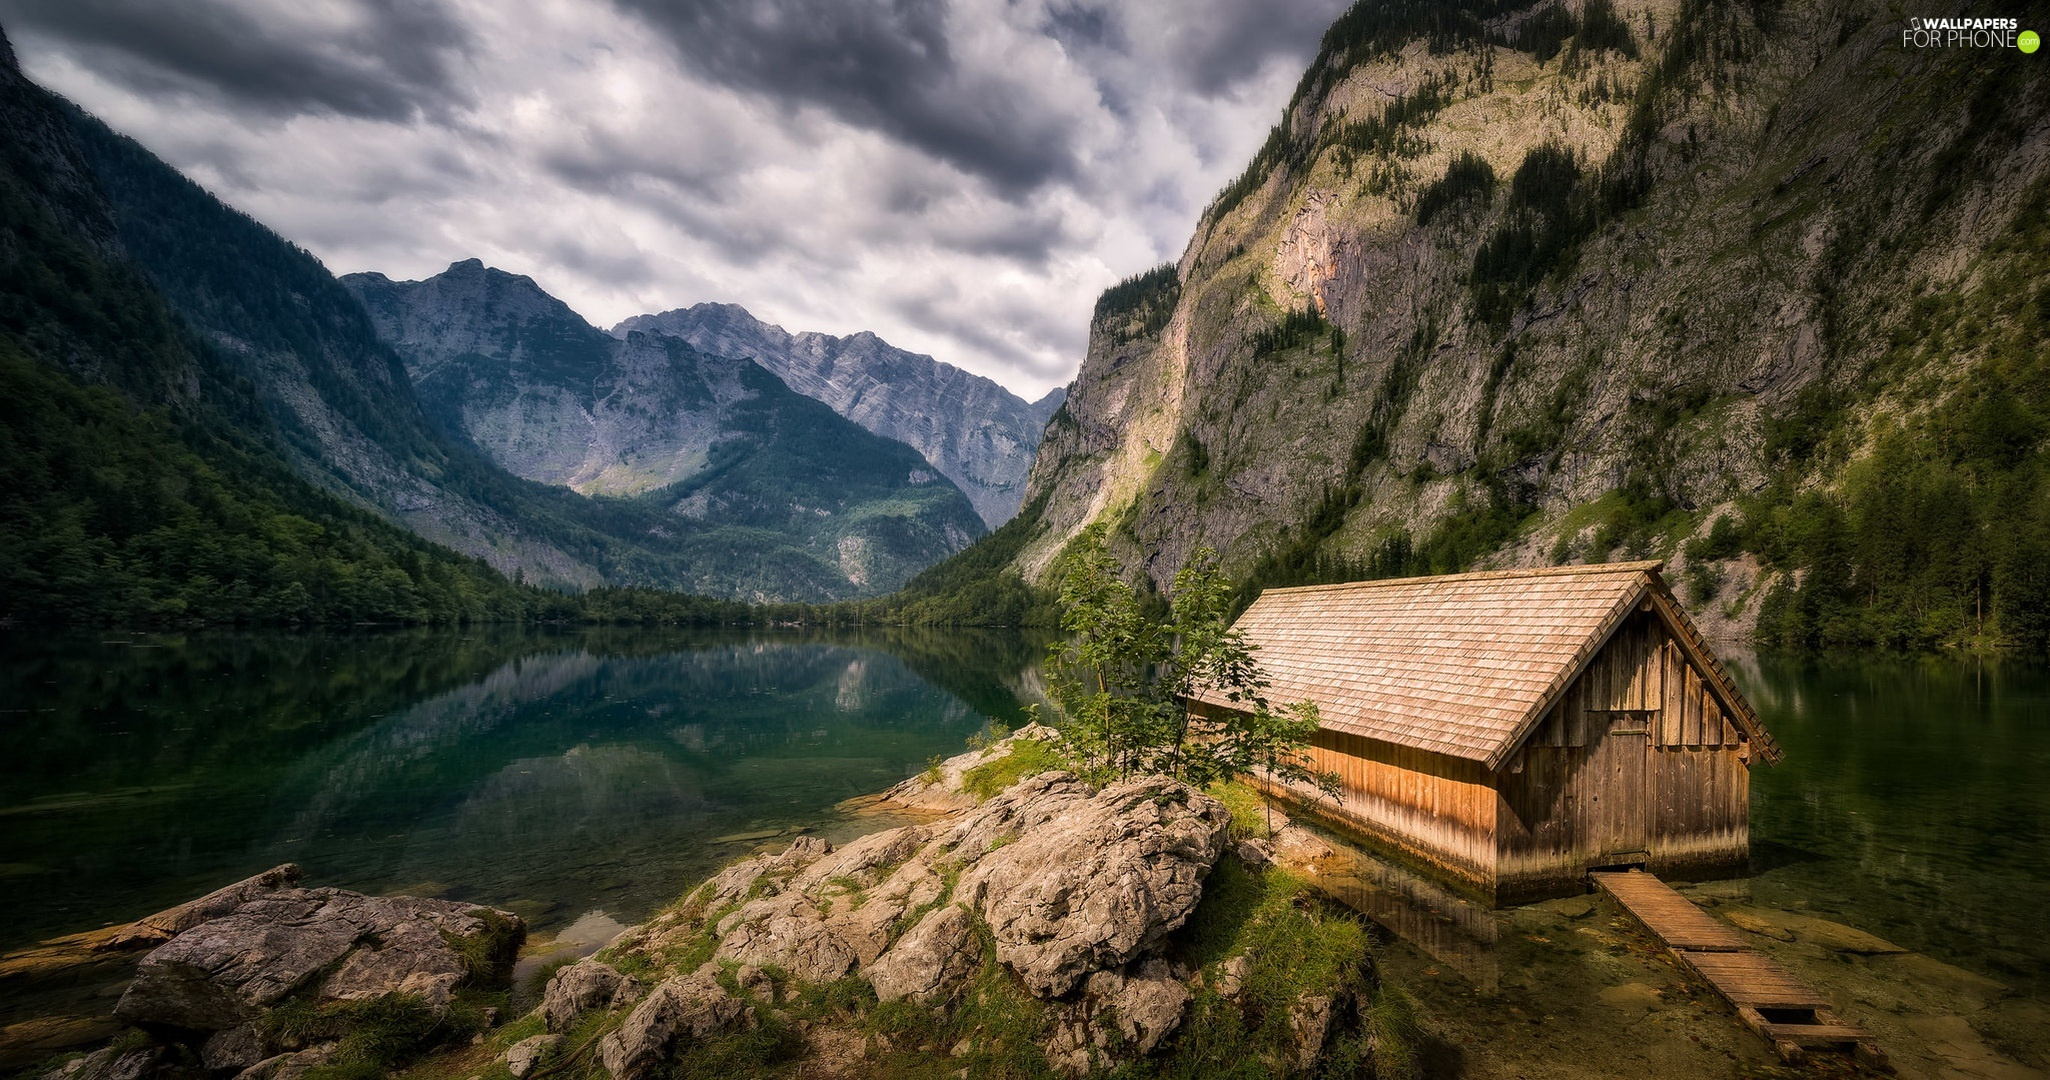 Stones, Obersee Lake, Alps Mountains, wooden, Bavaria, Germany, cote, Berchtesgaden National Park, Home